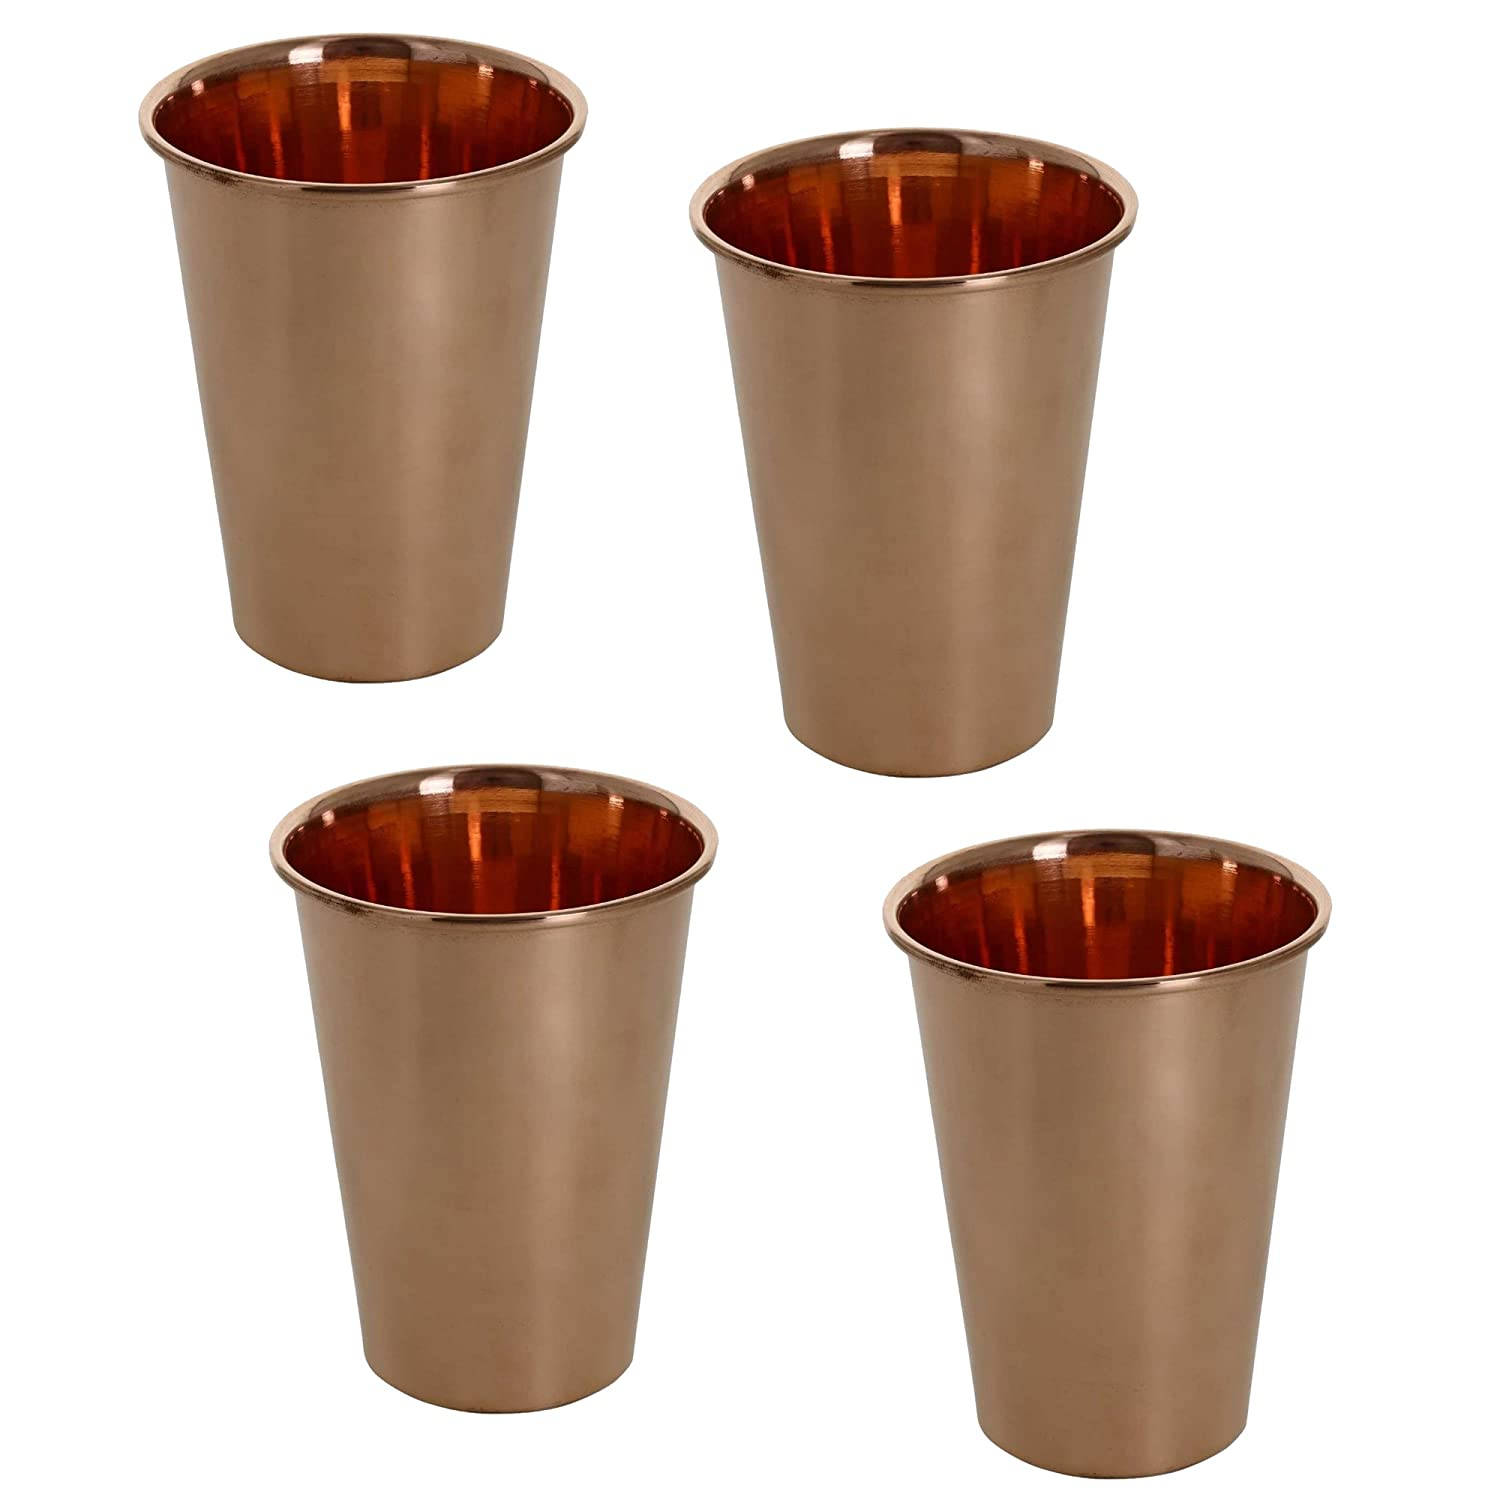 SKAVIJ Set of 4, Glasses Ayurvedic Product Indian Drinkware Cup Pure Copper Tumbler for Healing, Capacity 350 ML TG5_4